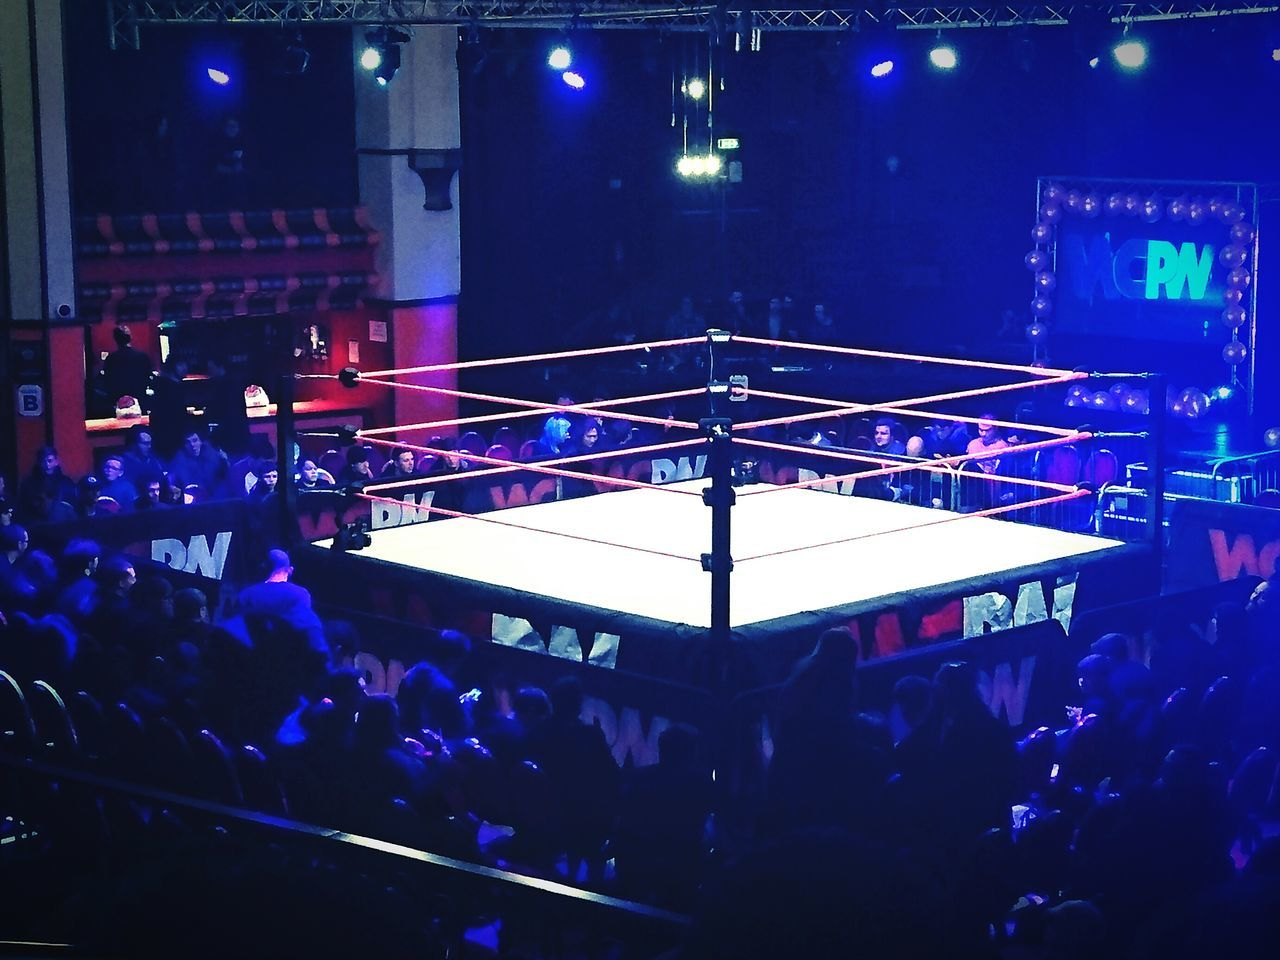 Large Group Of People Illuminated Night Crowd People Nightlife Performance Stage - Performance Space Audience Indoors  Stage Light Fan - Enthusiast Wwe WCPW First Eyeem Photo